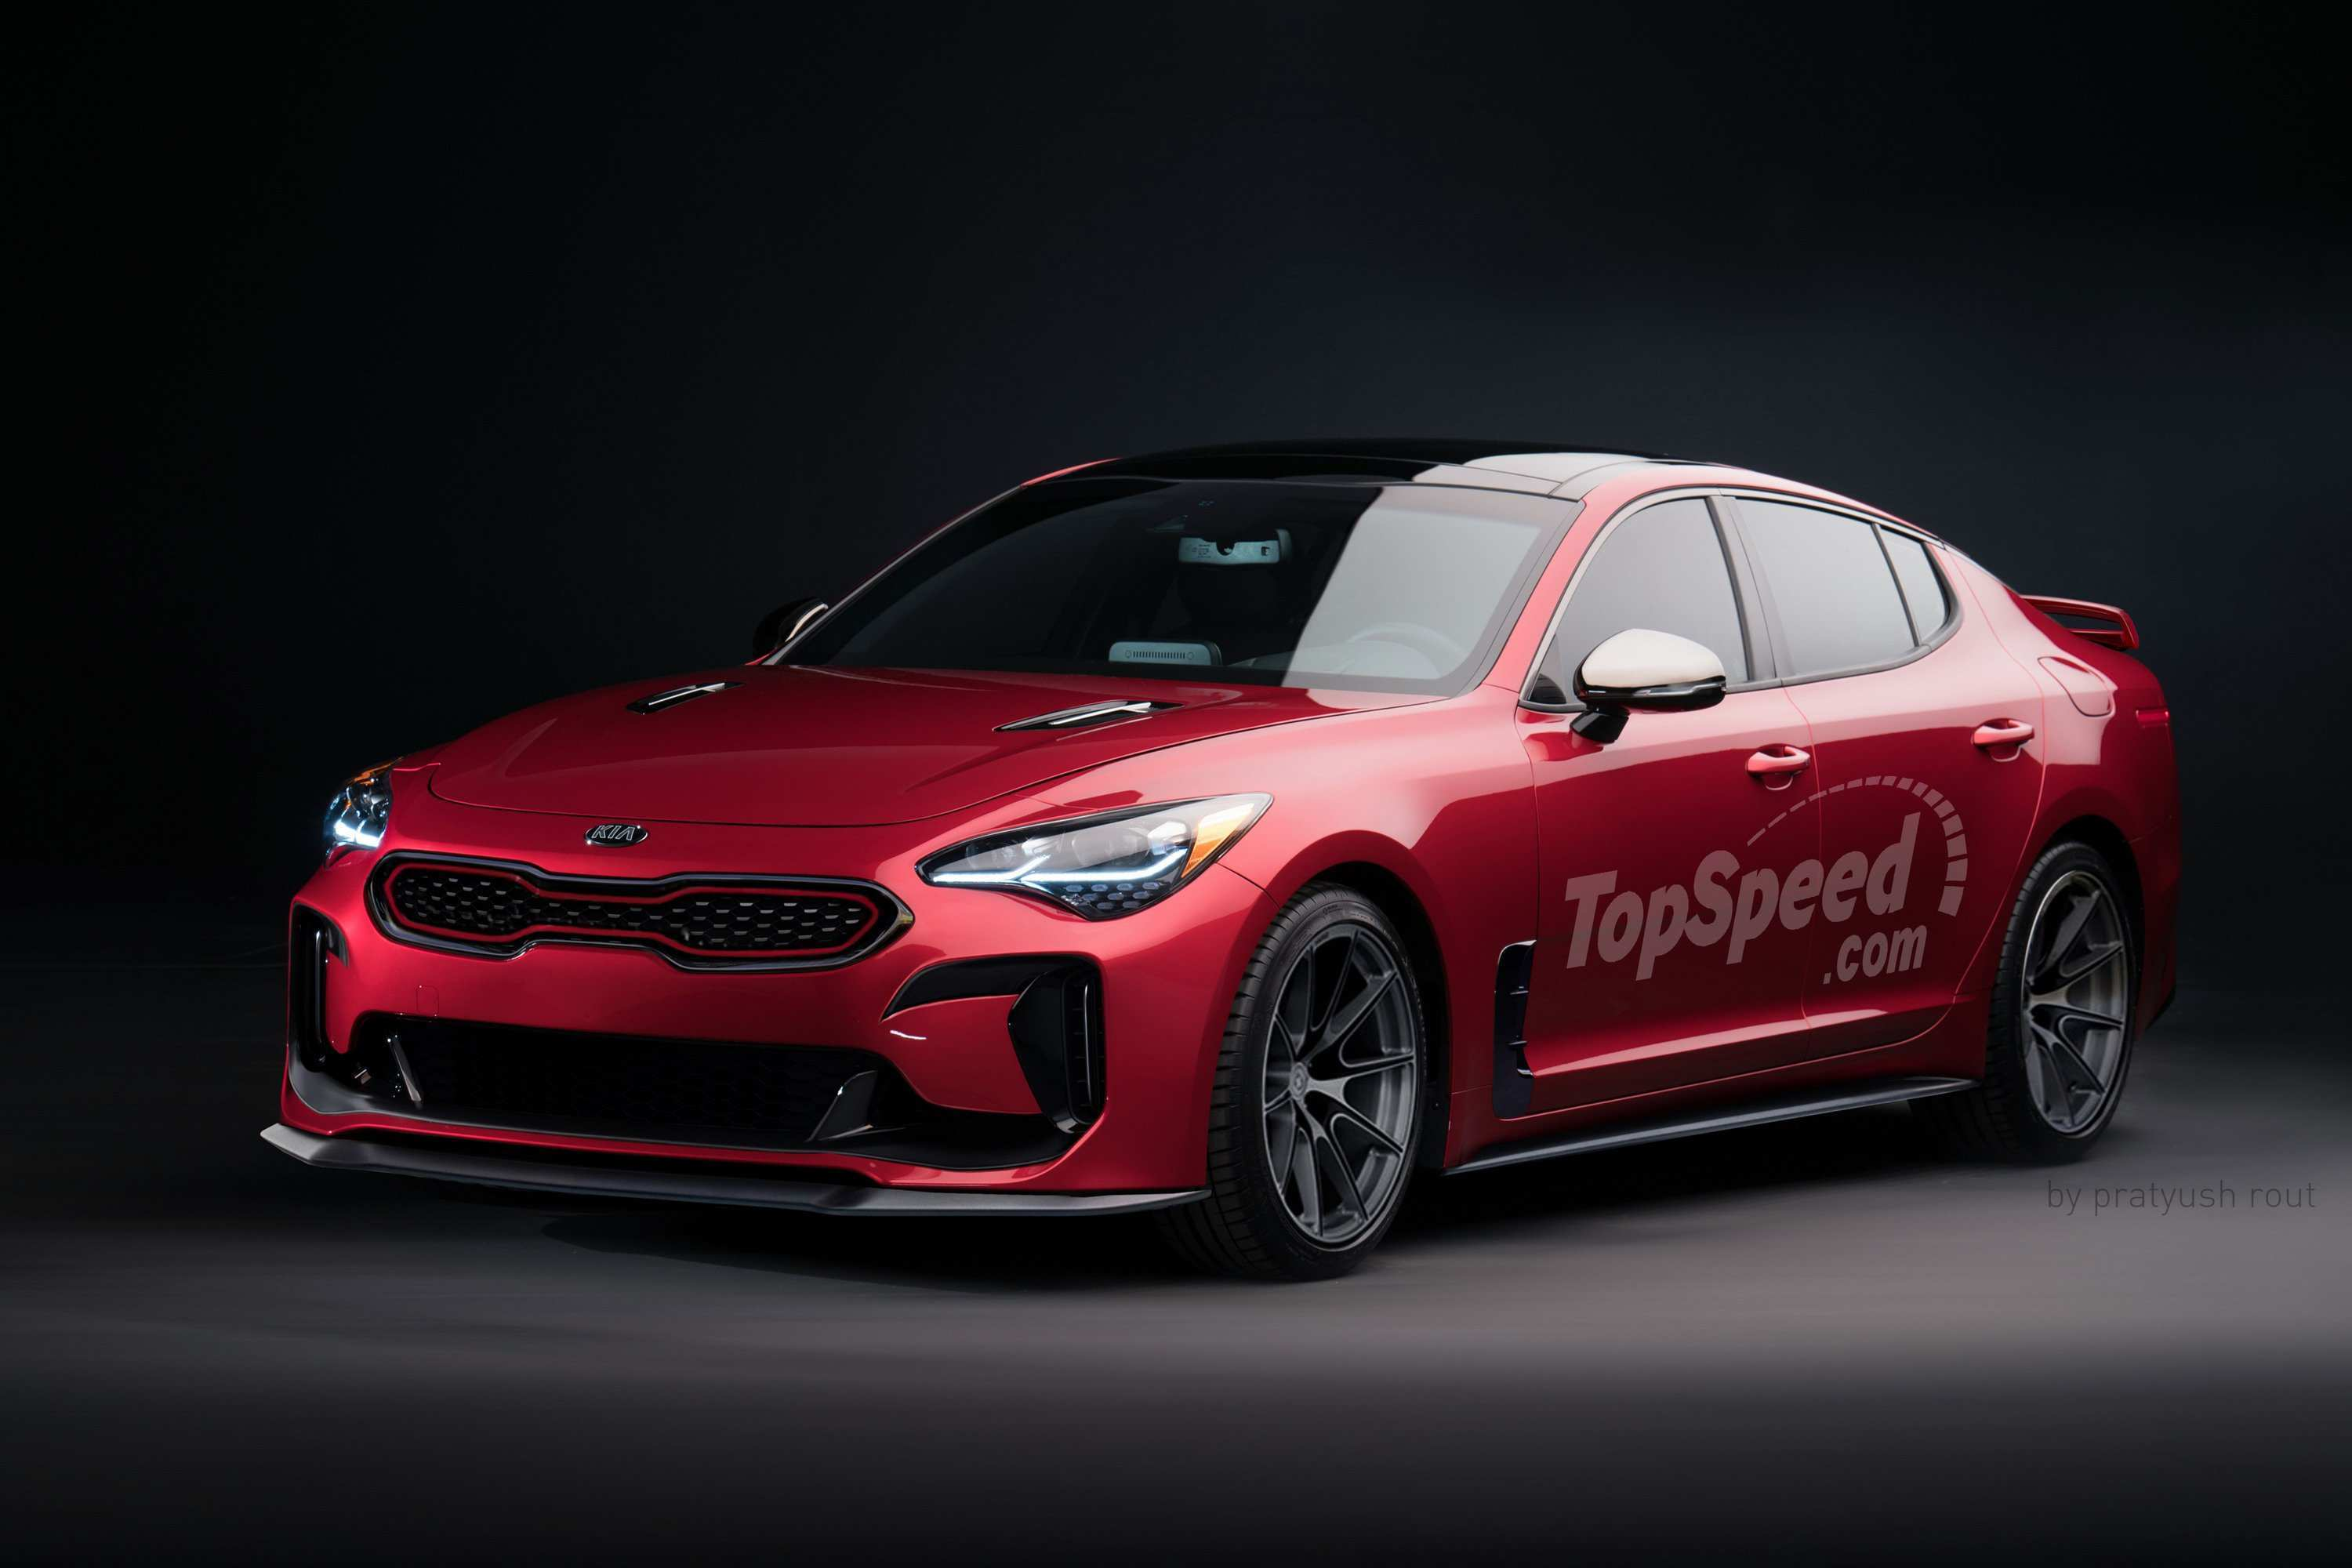 74 New 2019 Kia Stinger Gt Specs Rumors for 2019 Kia Stinger Gt Specs